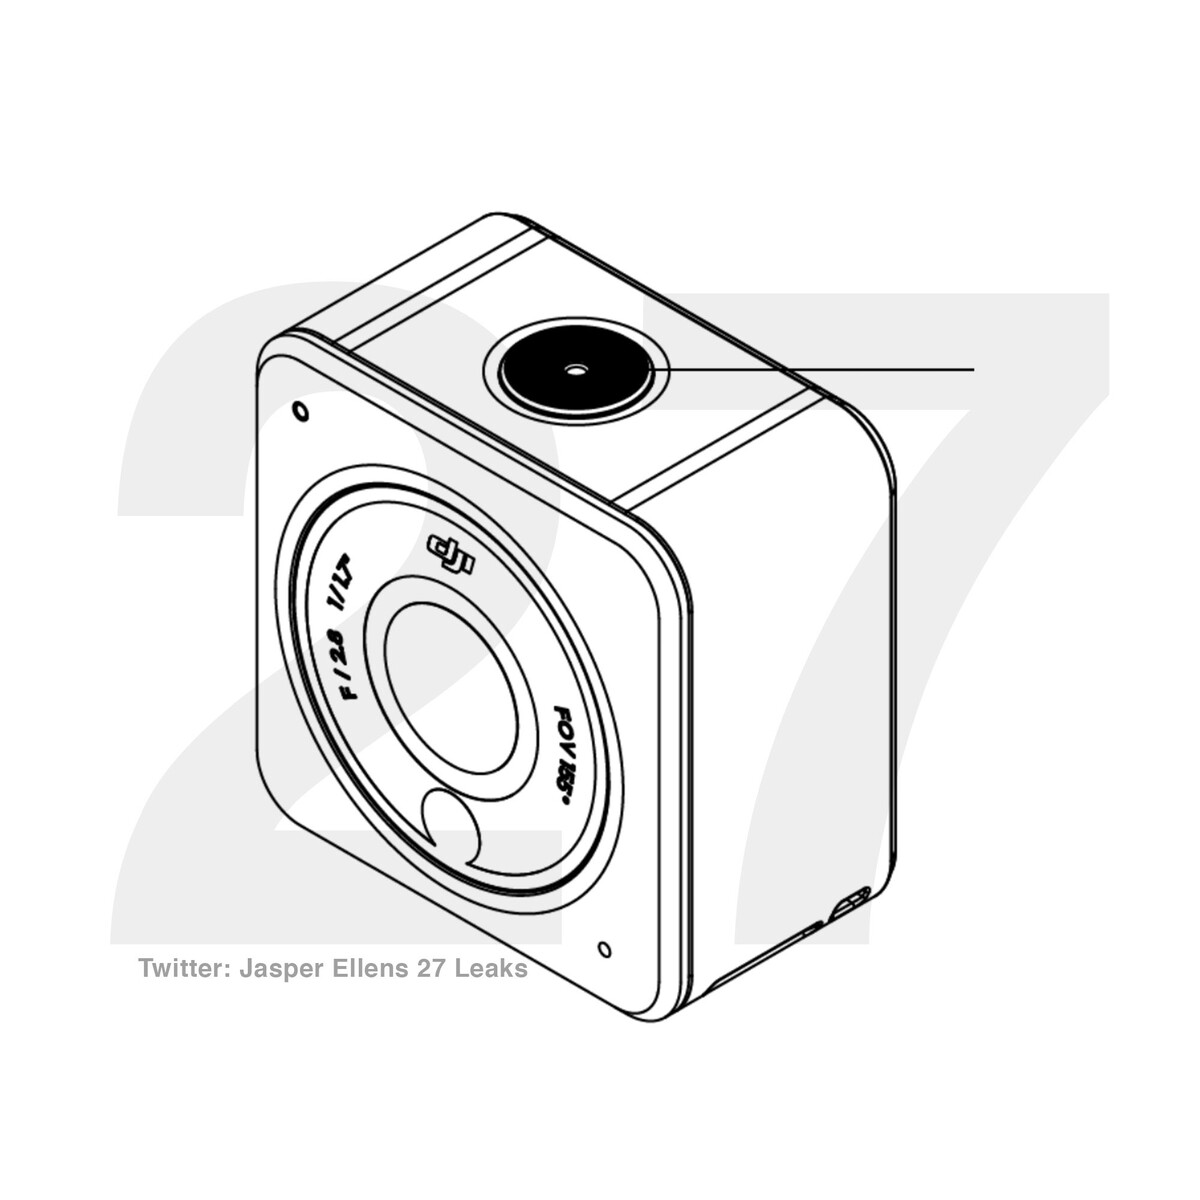 Leaked DJI Osmo Action 2 manual confirms the design and